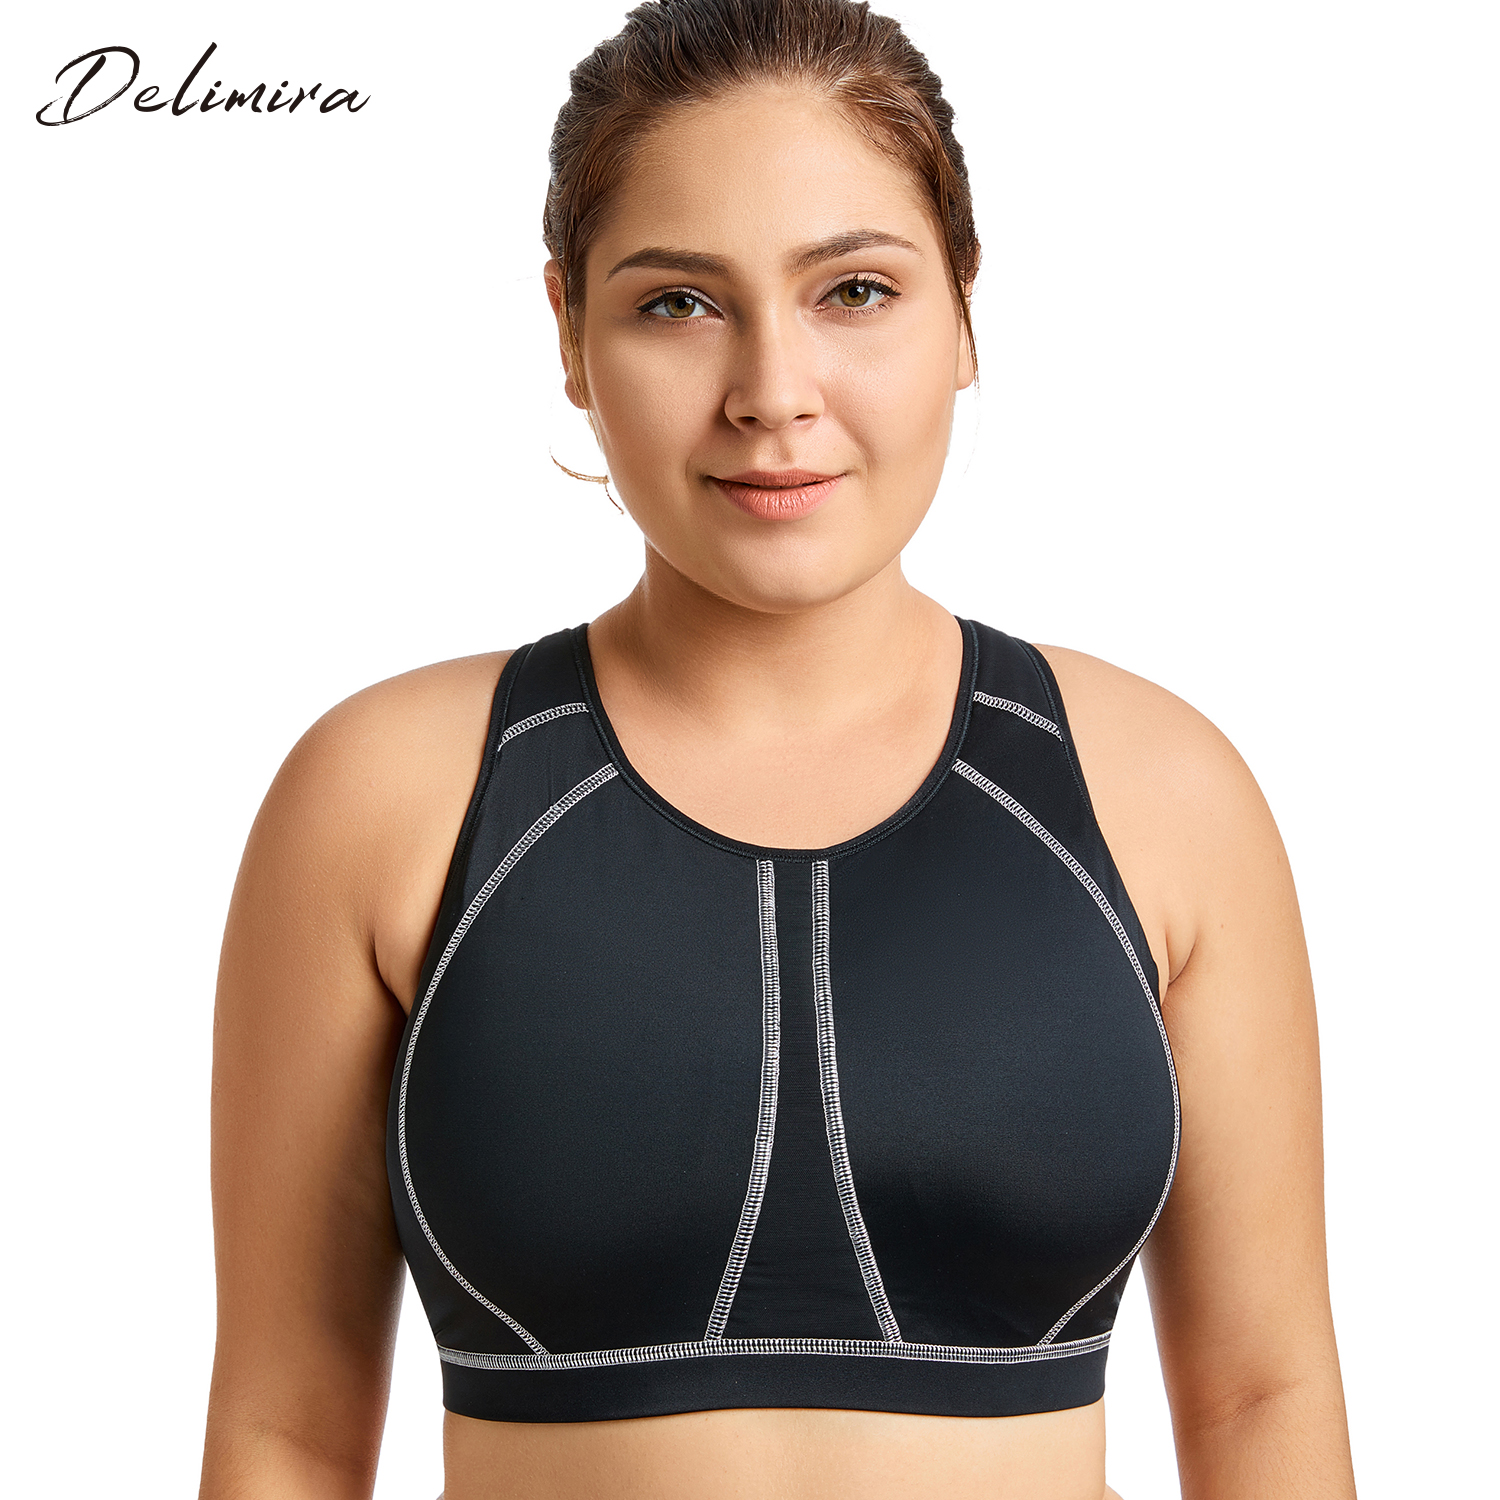 031f7c019a Women s High Impact Full Support Wire Free Molded Cup Active Plus Size  Exercise Bra-in Bras from Underwear   Sleepwears on Aliexpress.com